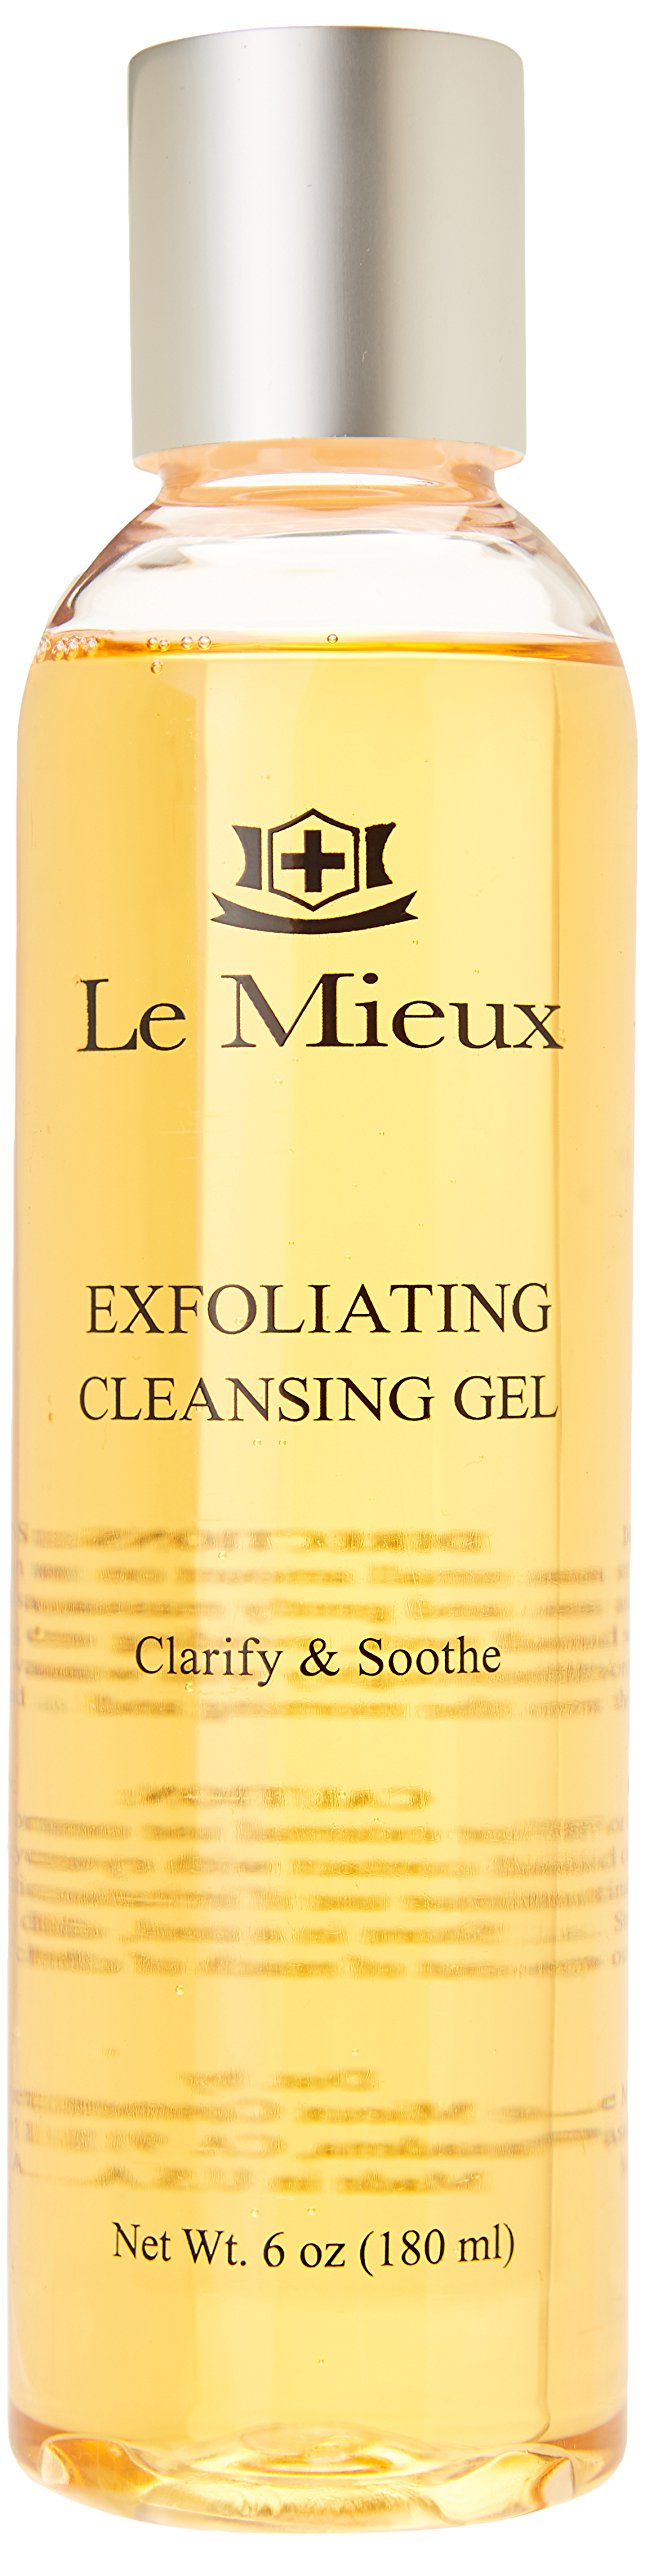 Le Mieux Exfoliating Cleansing Gel, 6 Ounce